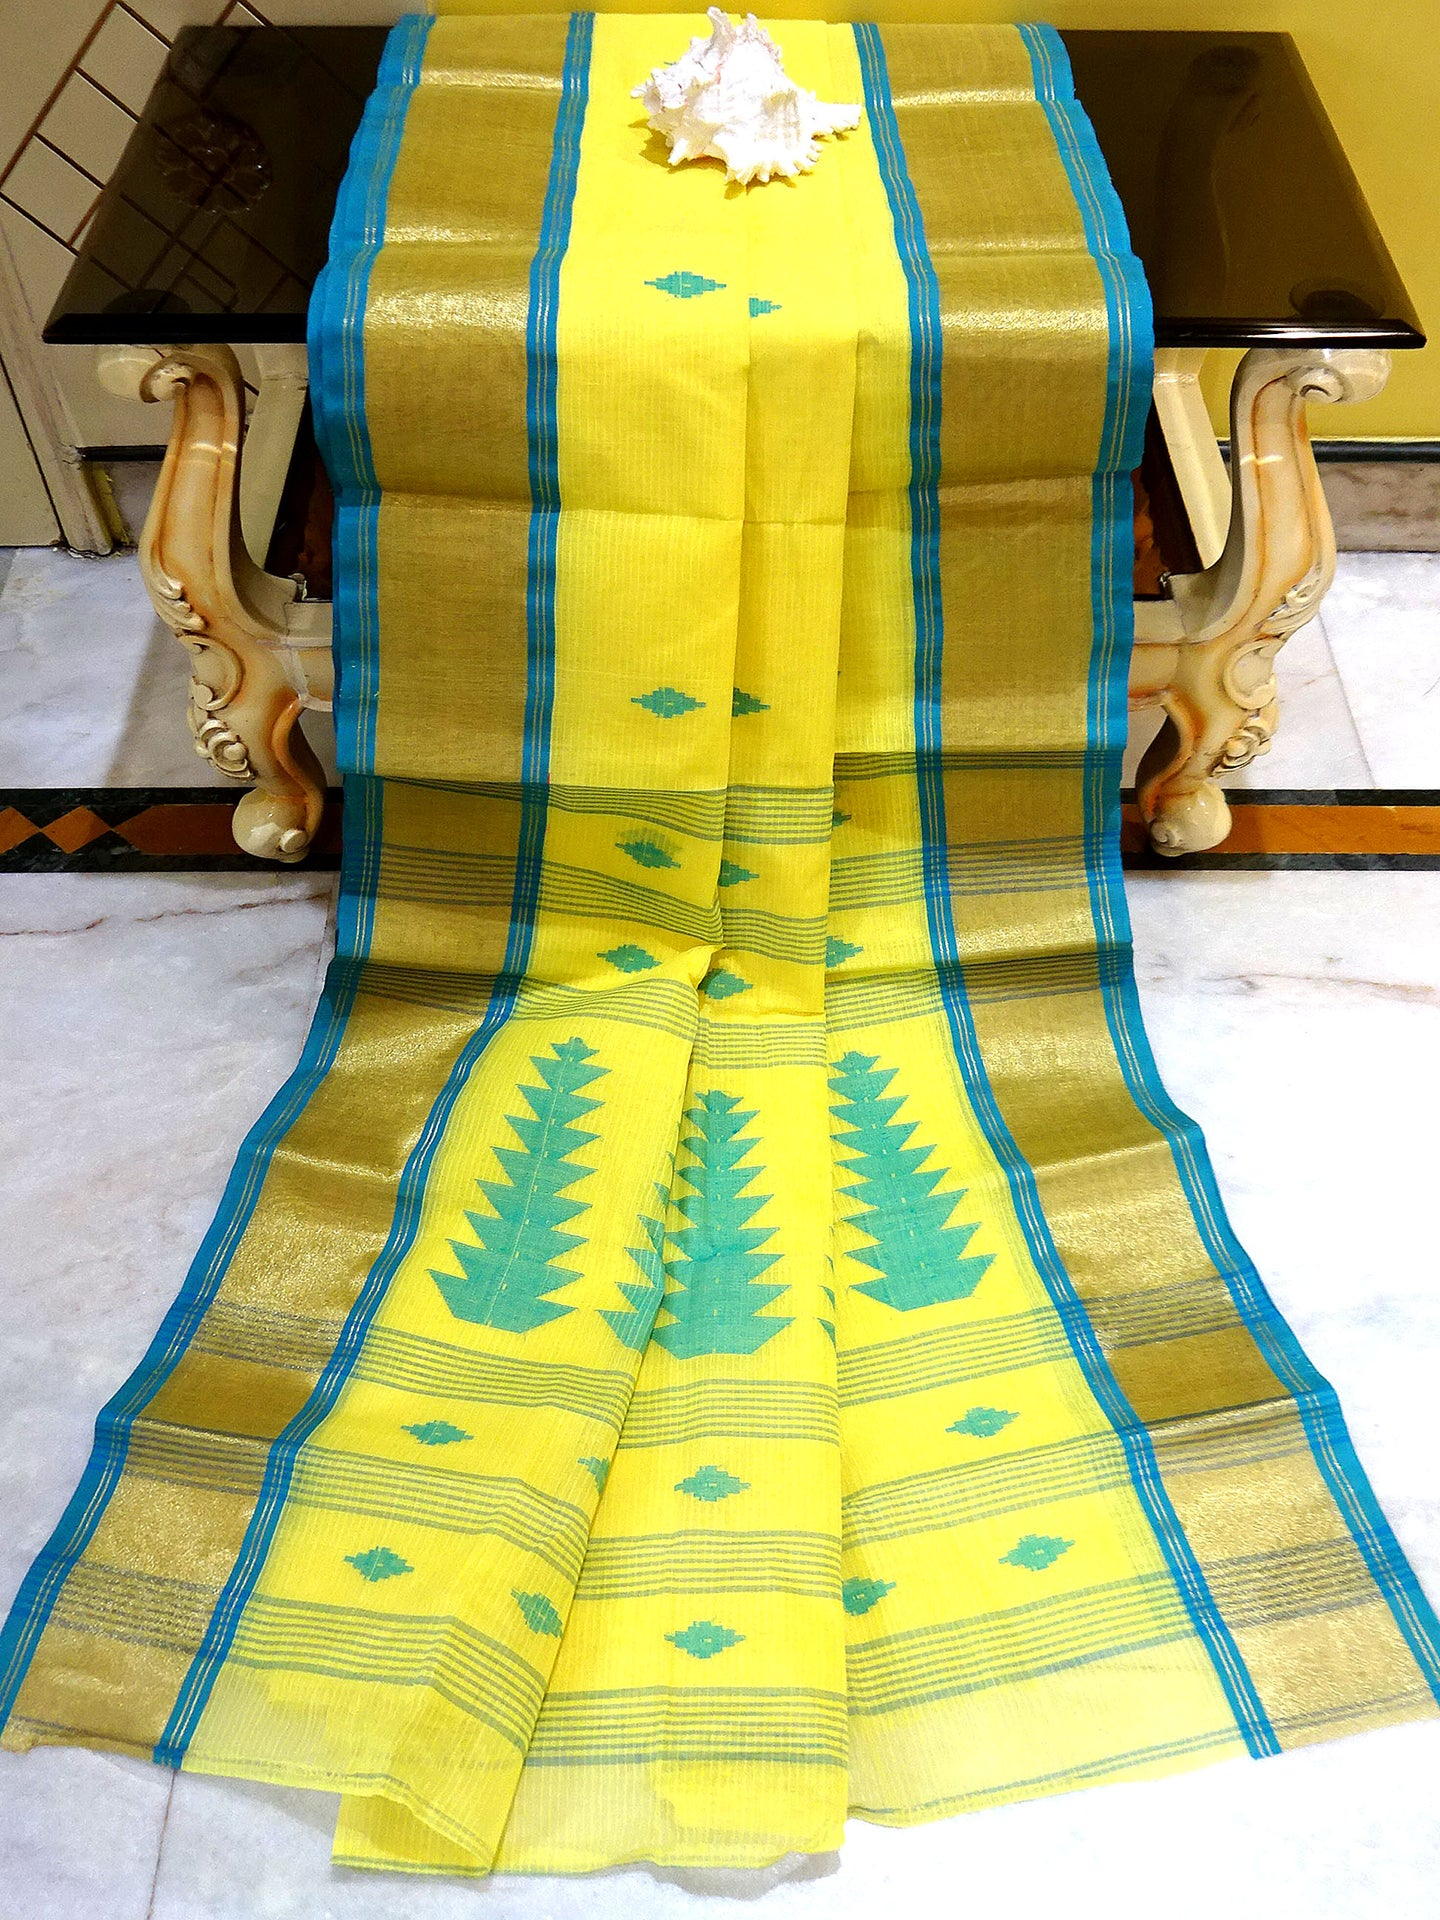 Bengal Handloom Cotton Saree in Lemon Yellow, Blue and Gold